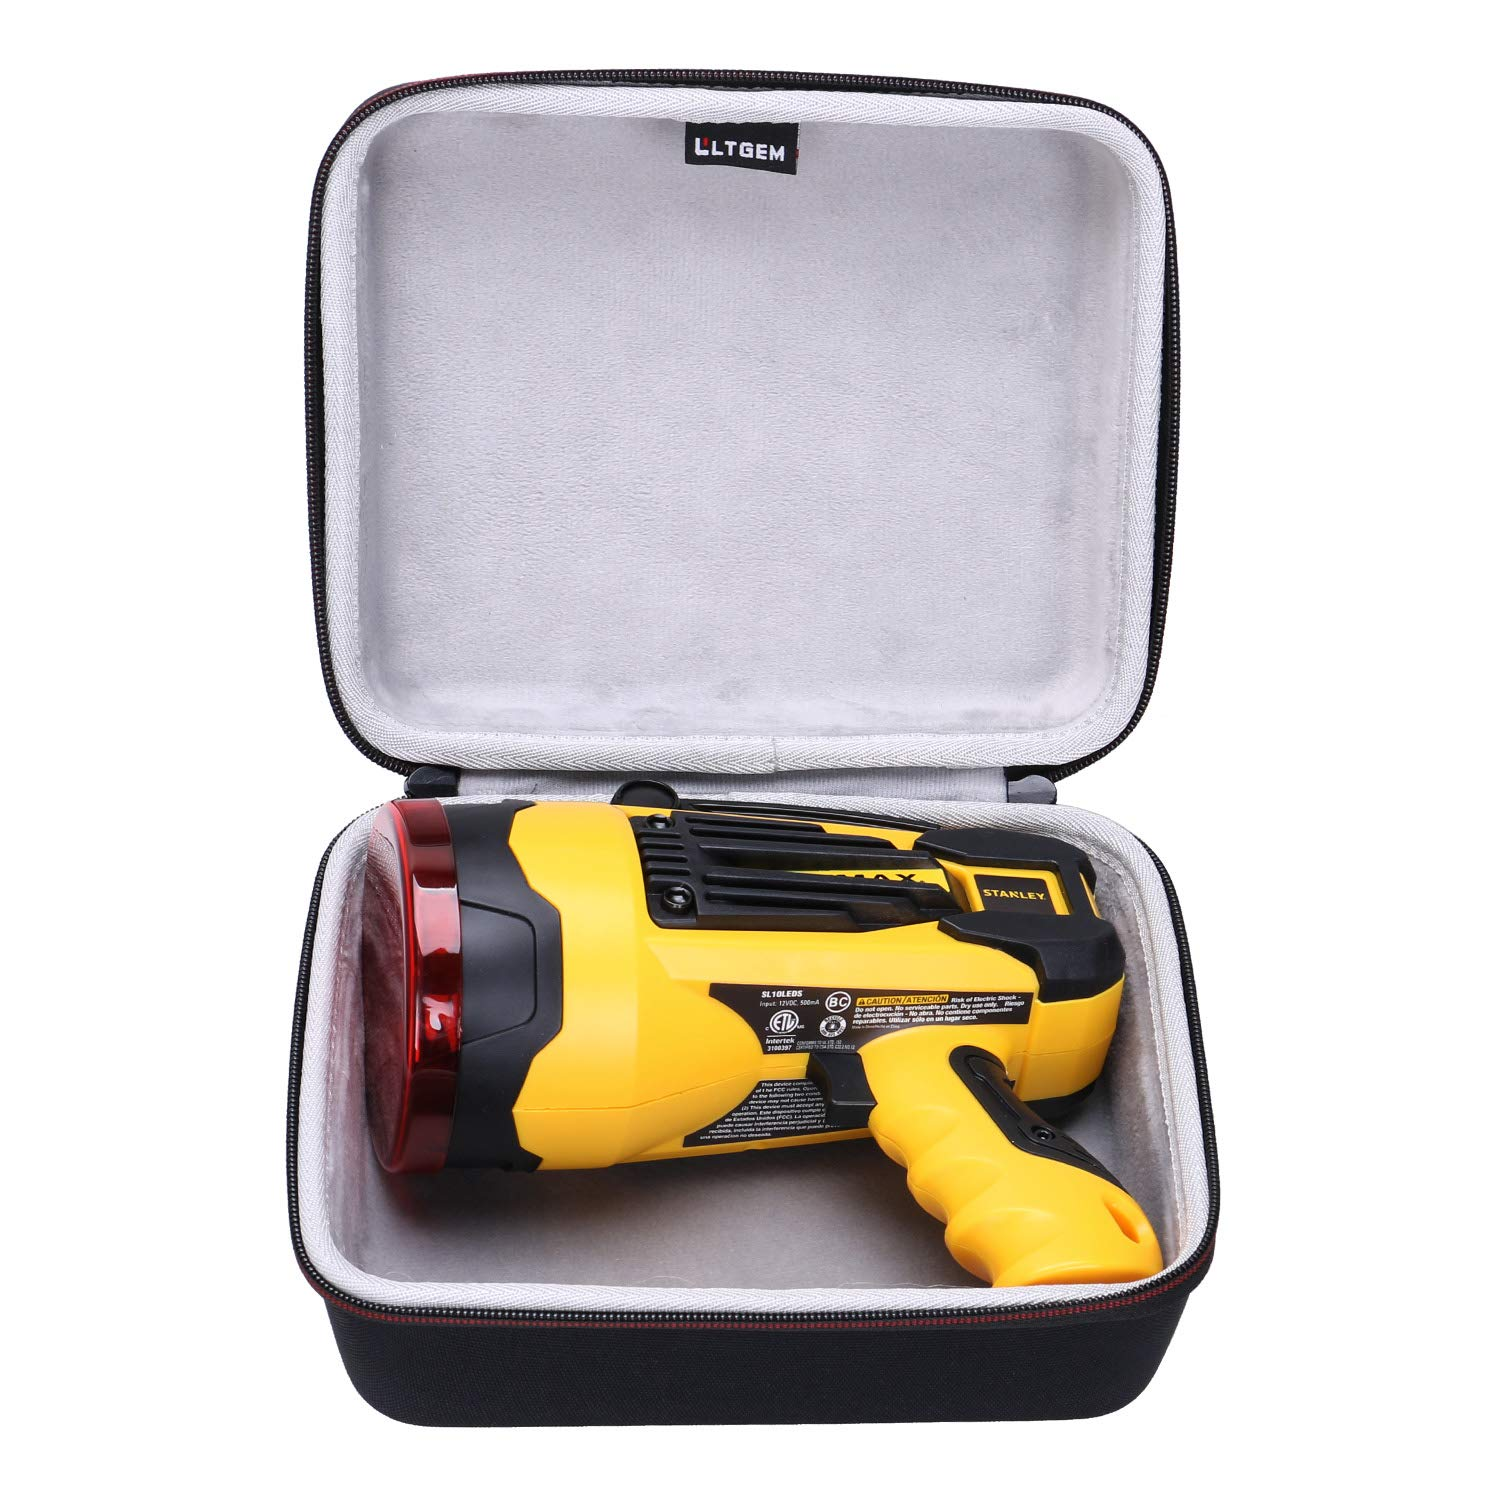 LTGEM EVA Hard Case for Stanley FATMAX SL10LEDS Rechargeable 2,200 Lumen LED Lithium Ion Spotlight (Not Included The Spotlight)